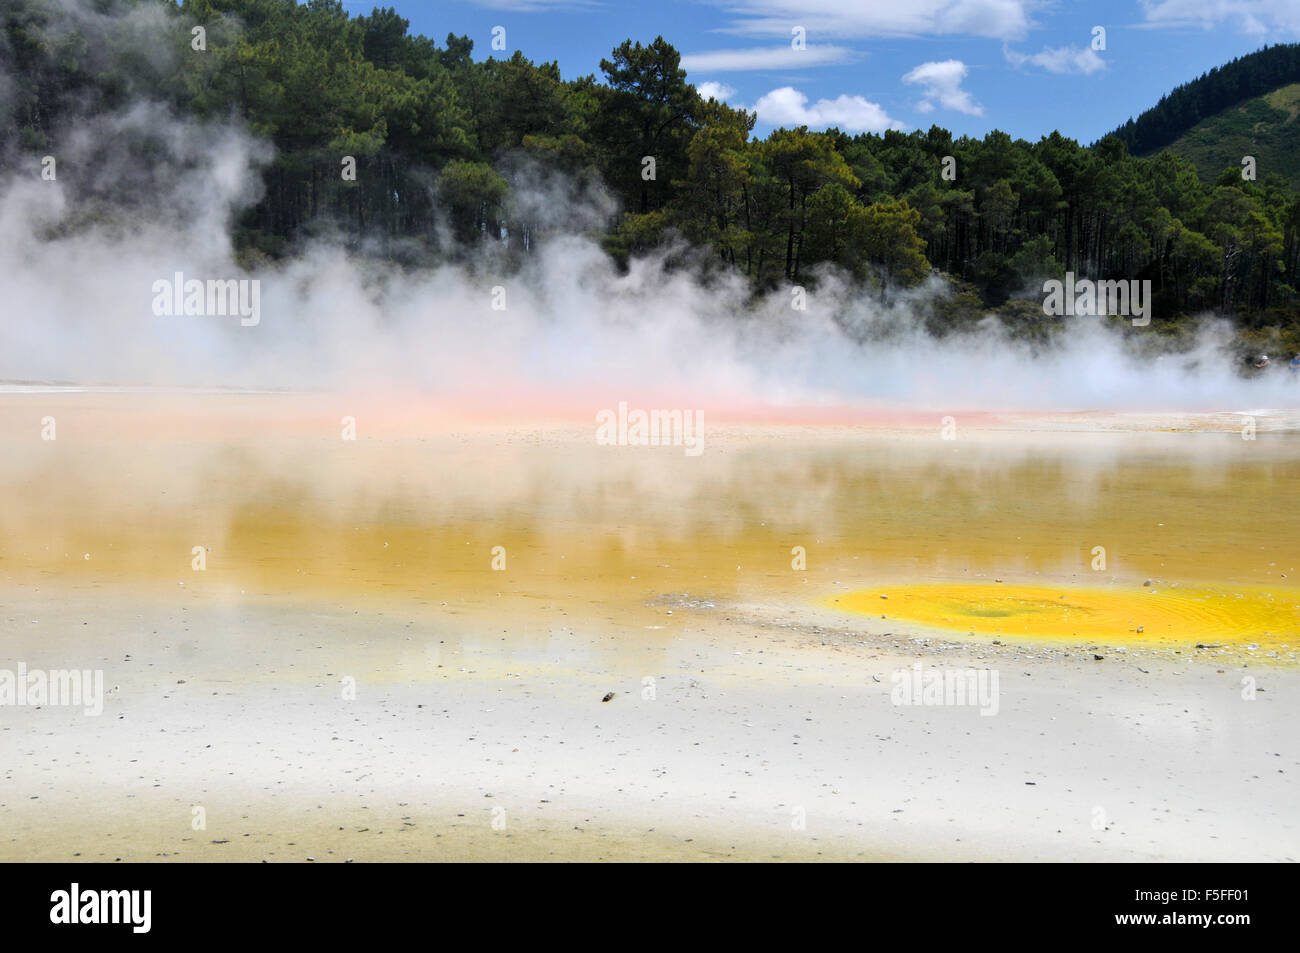 Waiotapu colorful thermal lake, Waiotapu Thermal Wonderland, Rotorua, North Island, New Zealand - Stock Image